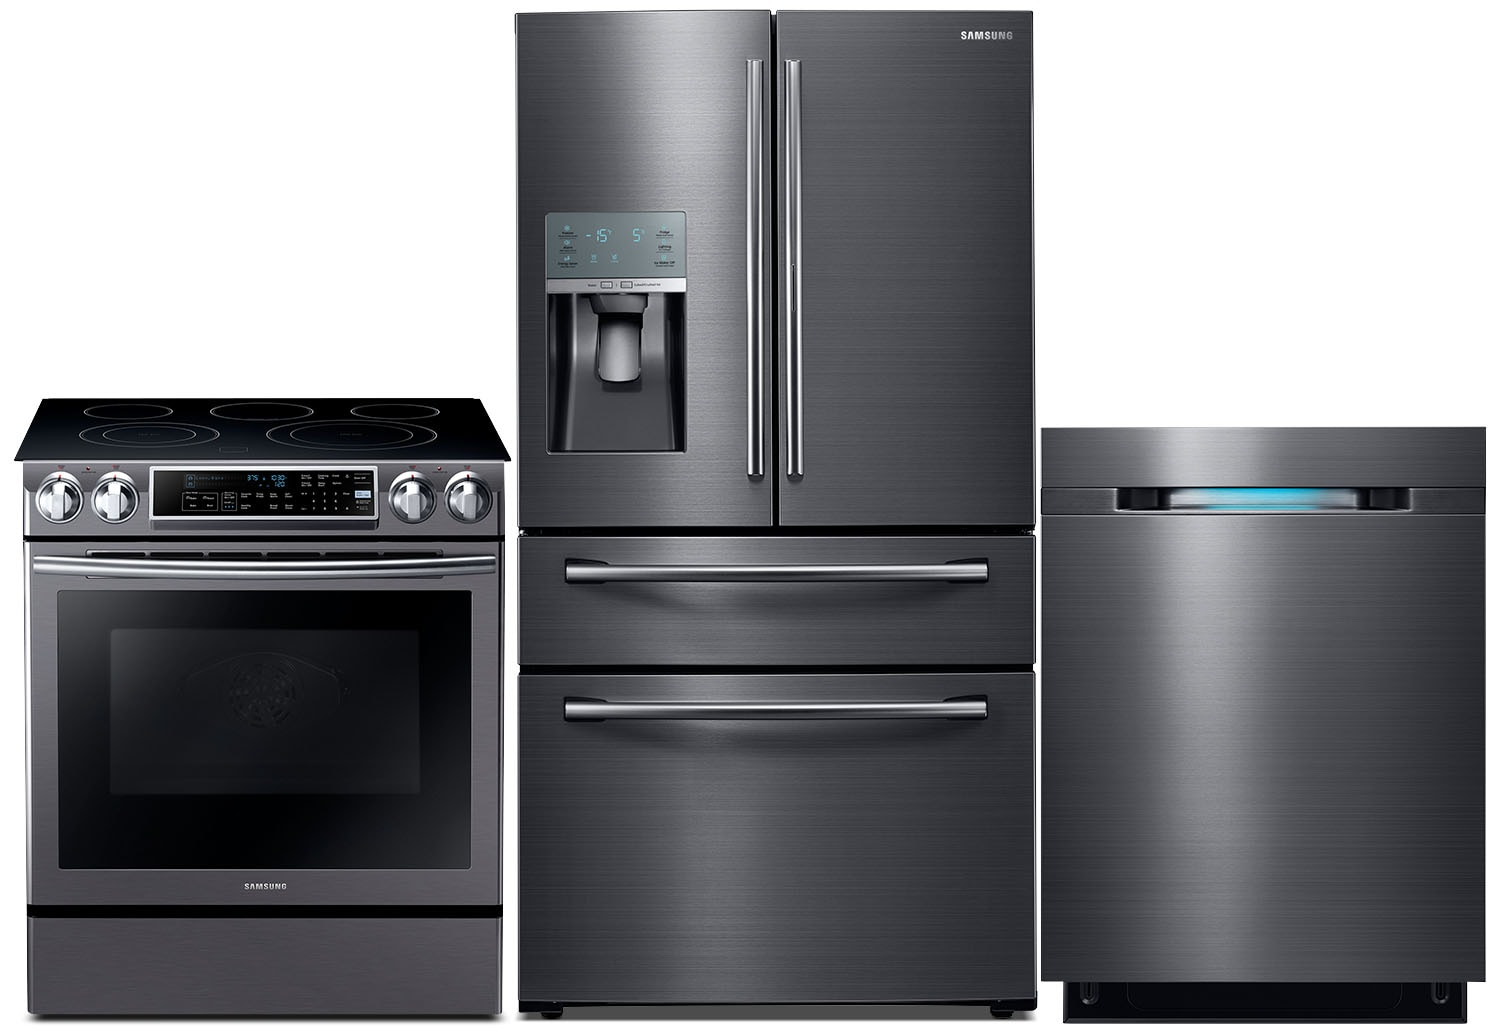 Cooking Products - Samsung 27.8 Cu. Ft. Refrigerator, 5.8 Cu. Ft. Range and Dishwasher – Black Stainless Steel